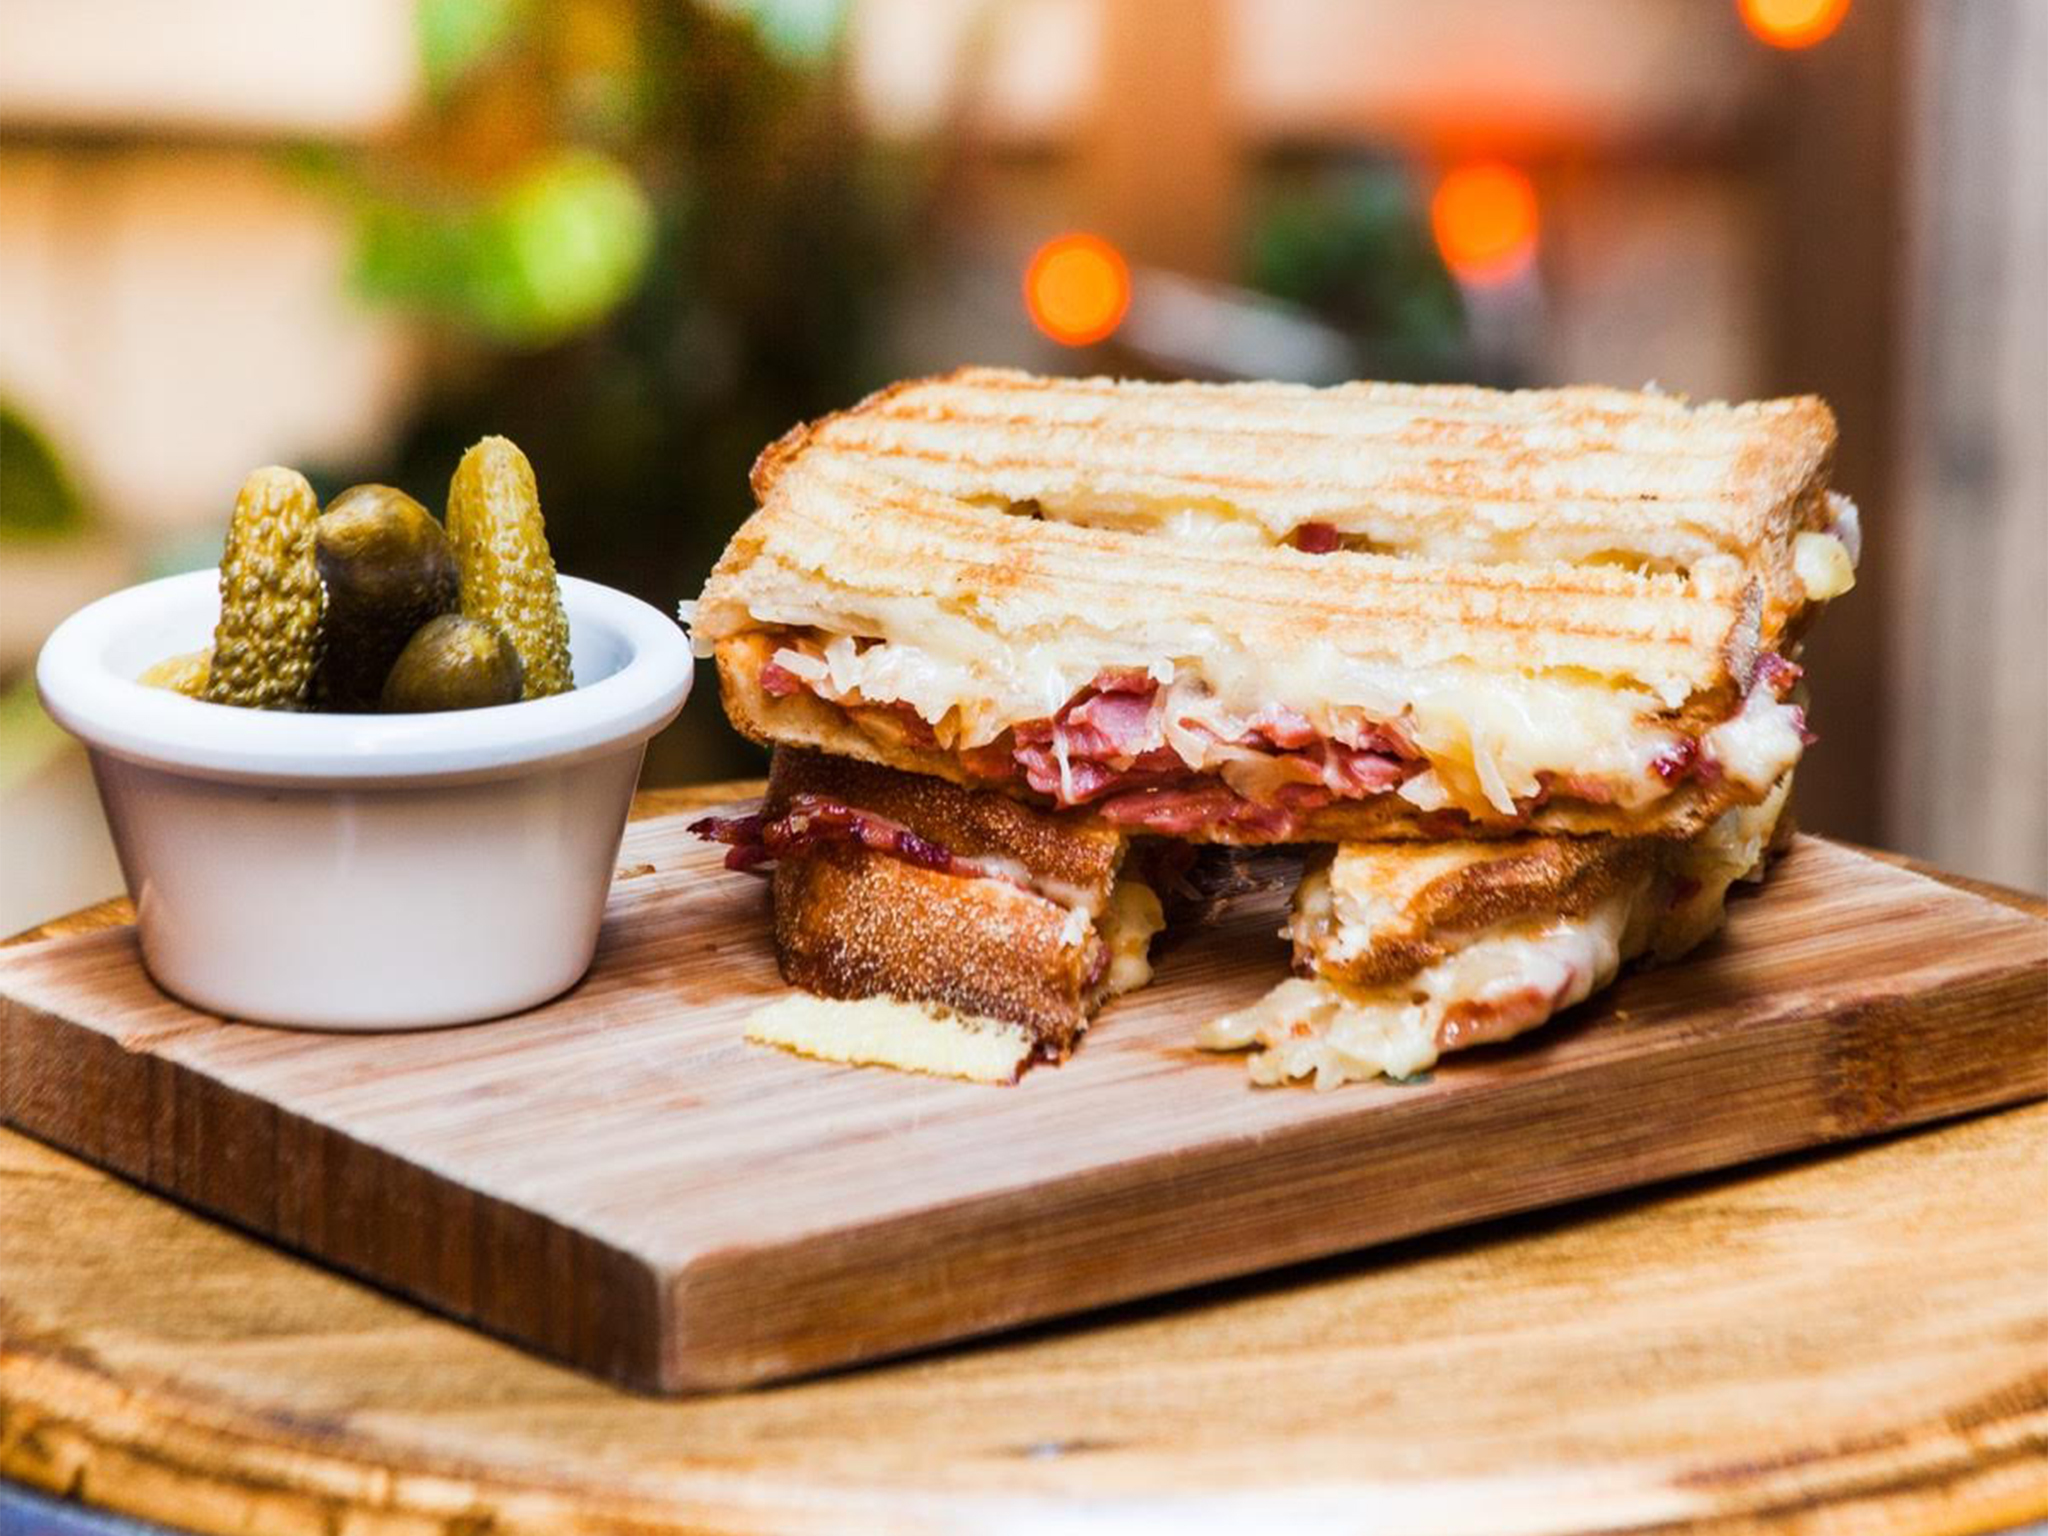 A toasted sandwich on a wooden board with a side of pickles